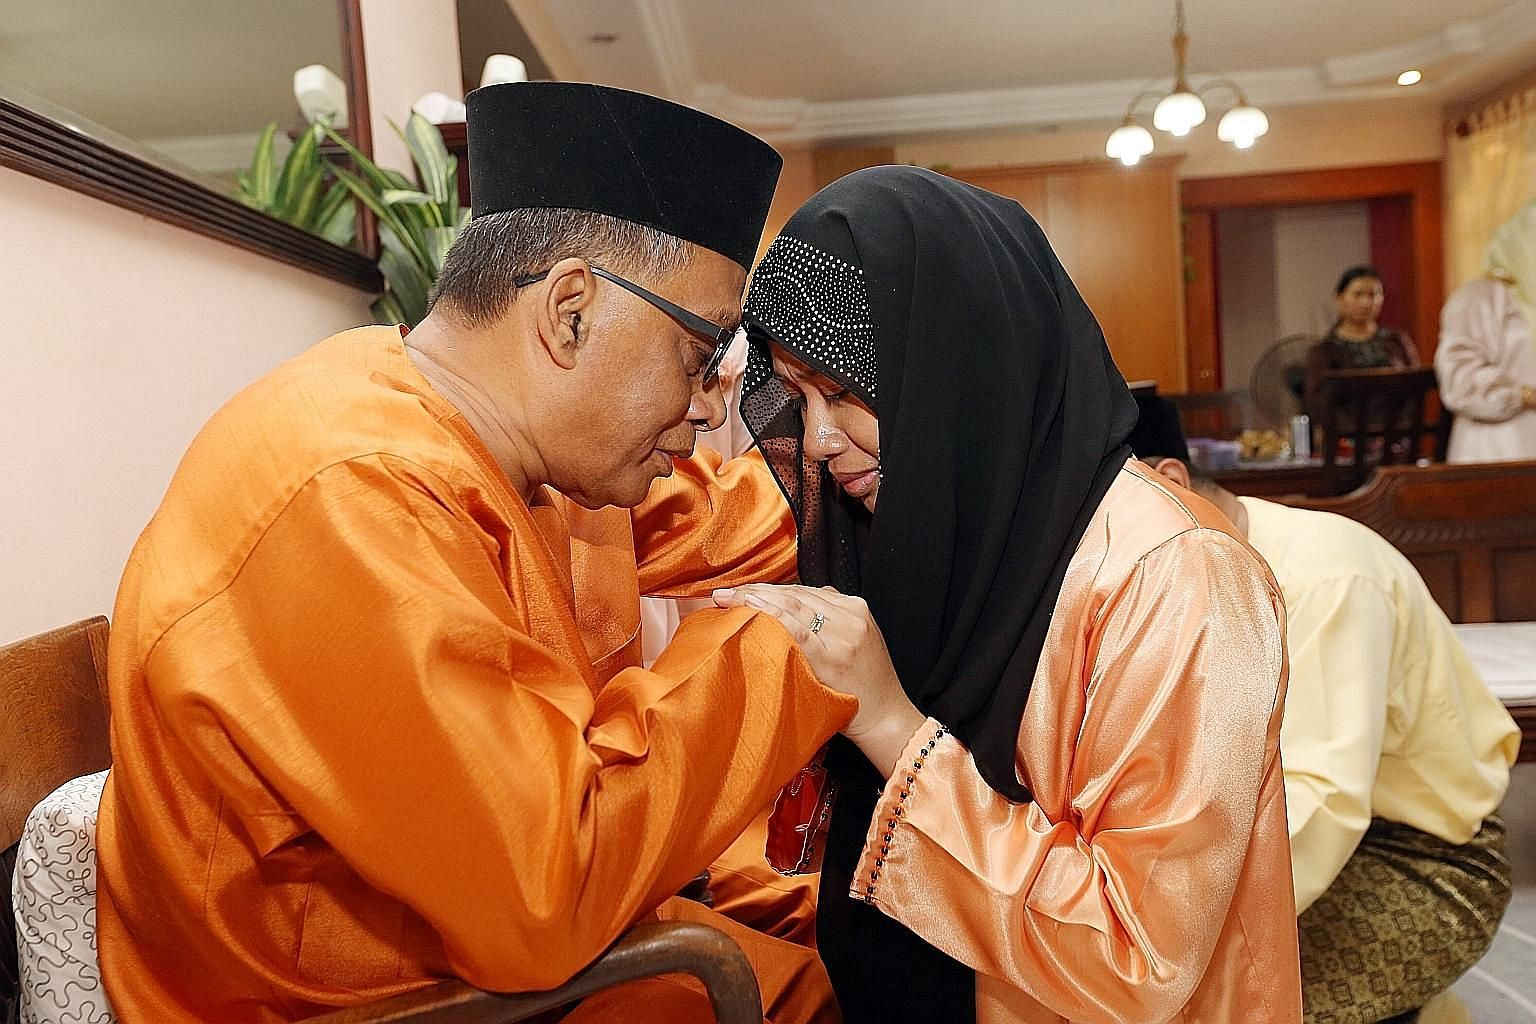 Mr Ismail Awang, 64, embracing daughter-in-law Nur Dayan Danel, 30, as his children and their families asked him and his wife for their forgiveness for any wrongdoing committed in the past year.